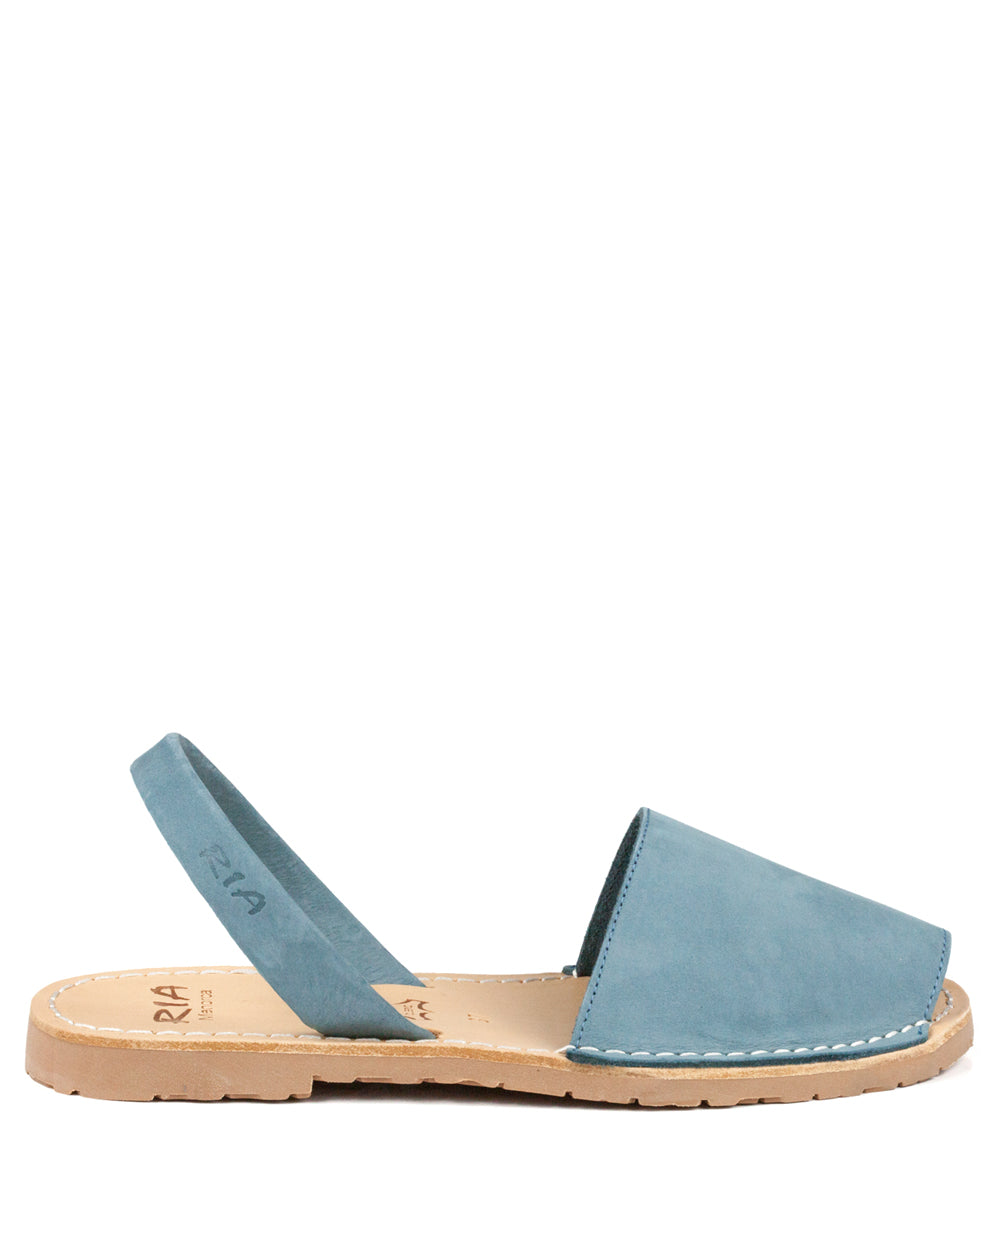 Menorcan Sandals Denim Nubuck - The Espadrille Hut